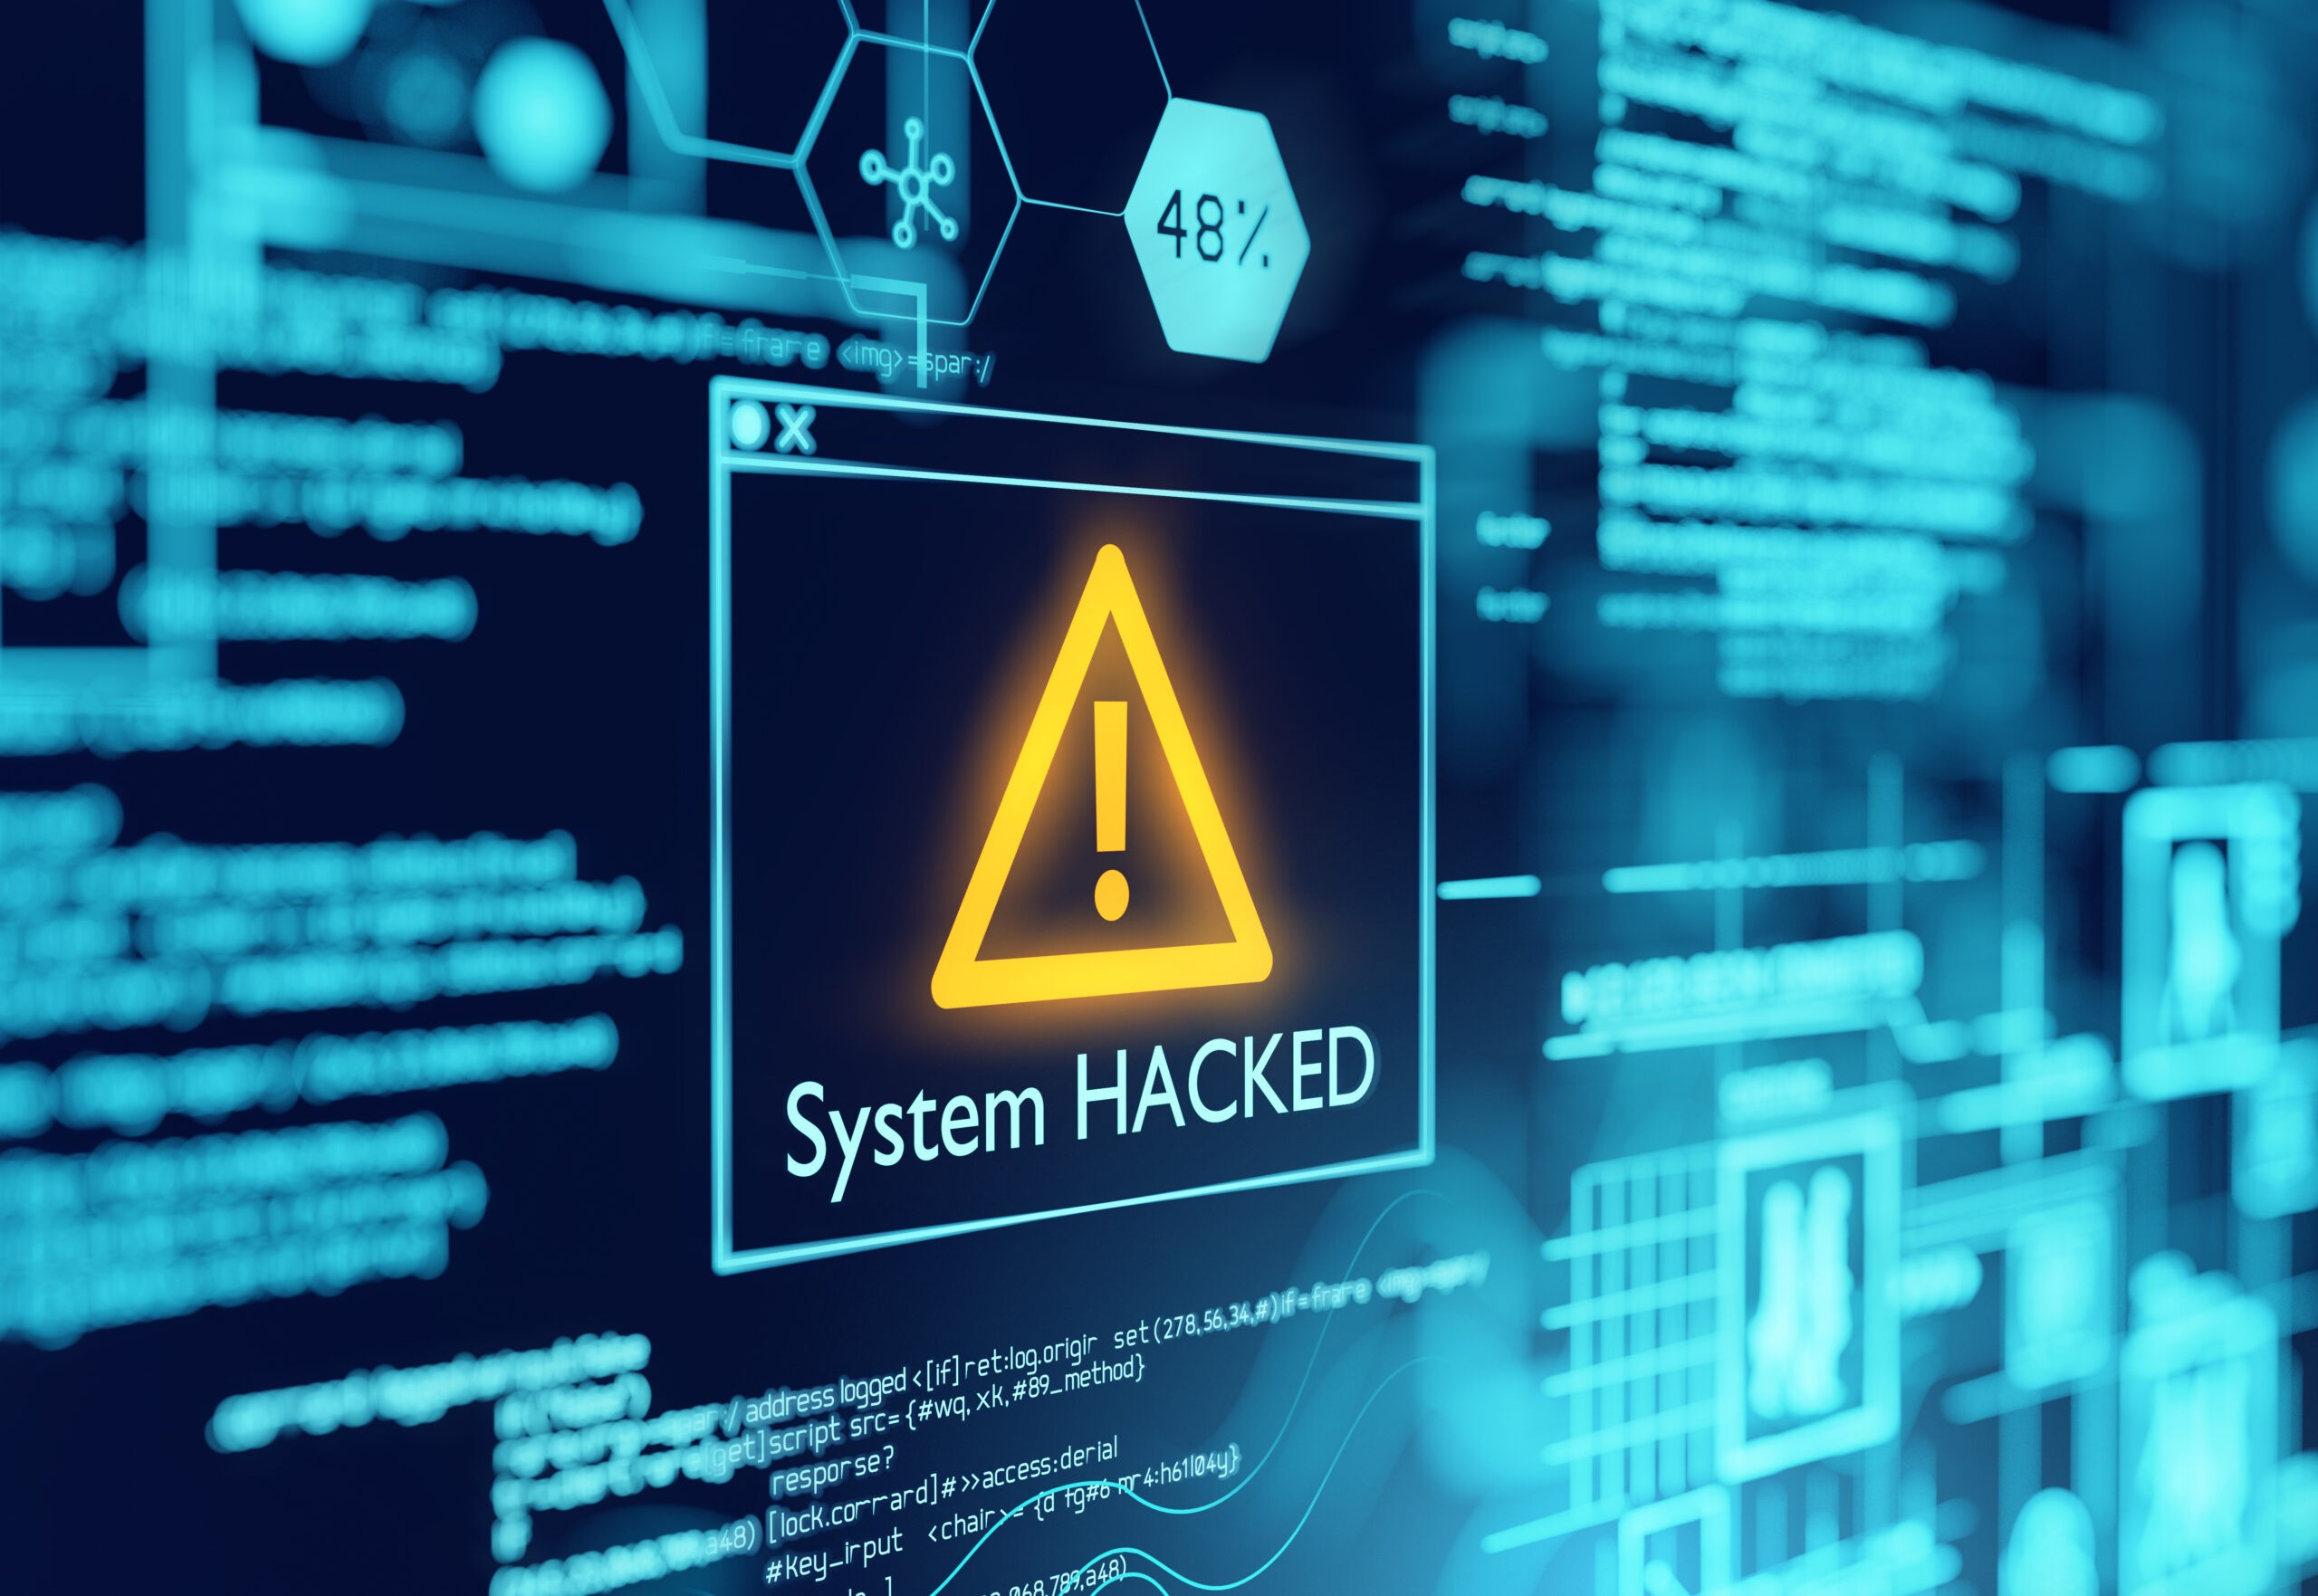 A computer popup box screen warning of a system being hacked, compromised software environment. 3D illustration.